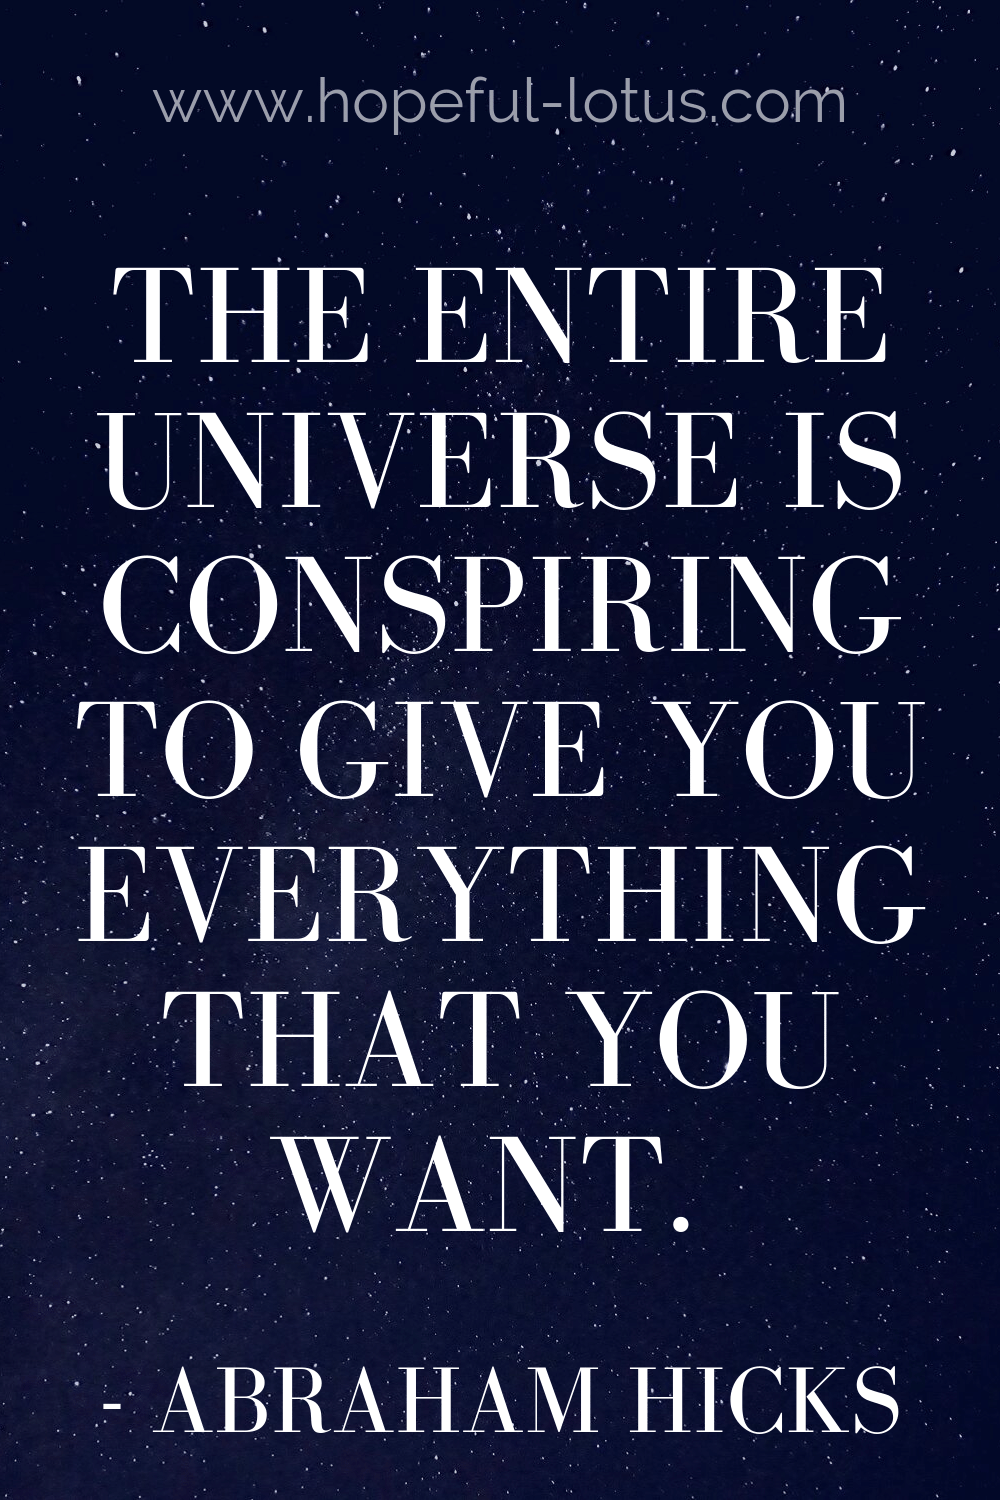 The entire universe is conspiring to give you everything that you want - Abraham Hicks.  Read more Abraham Hicks quotes to get in alignment with your desires and the magic of the universe!